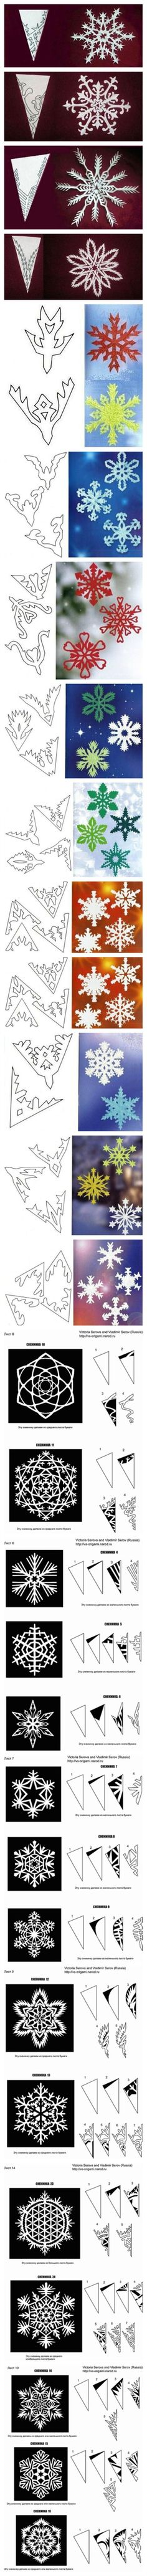 Snowflake patterns...